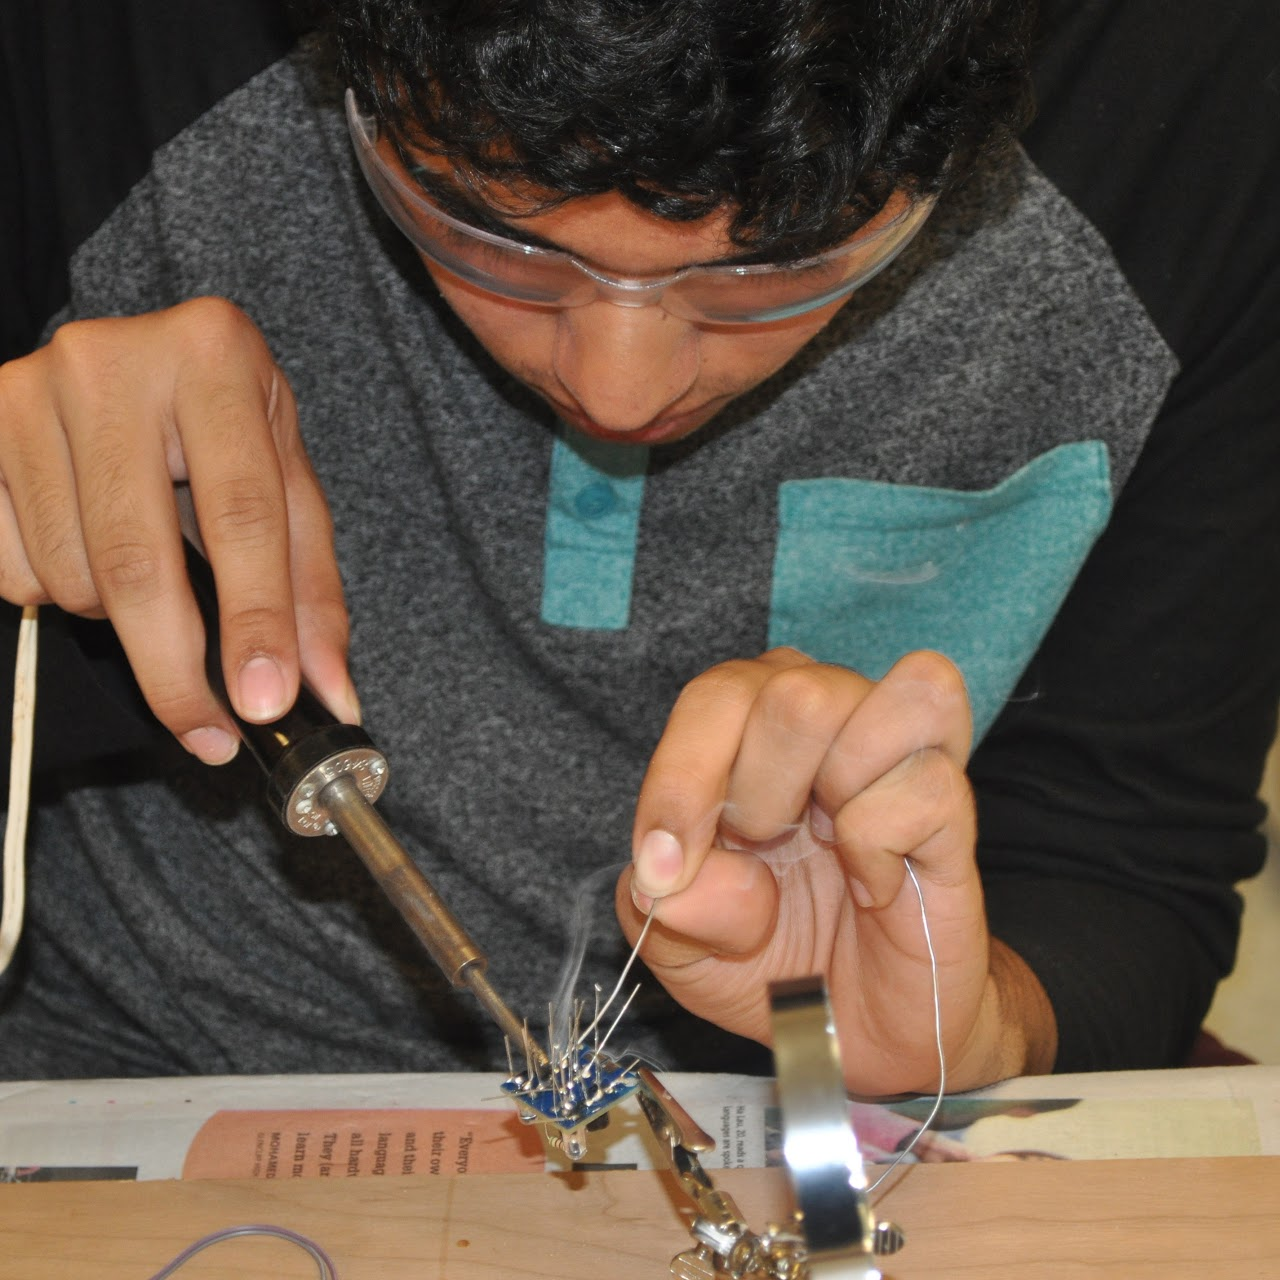 youth soldering